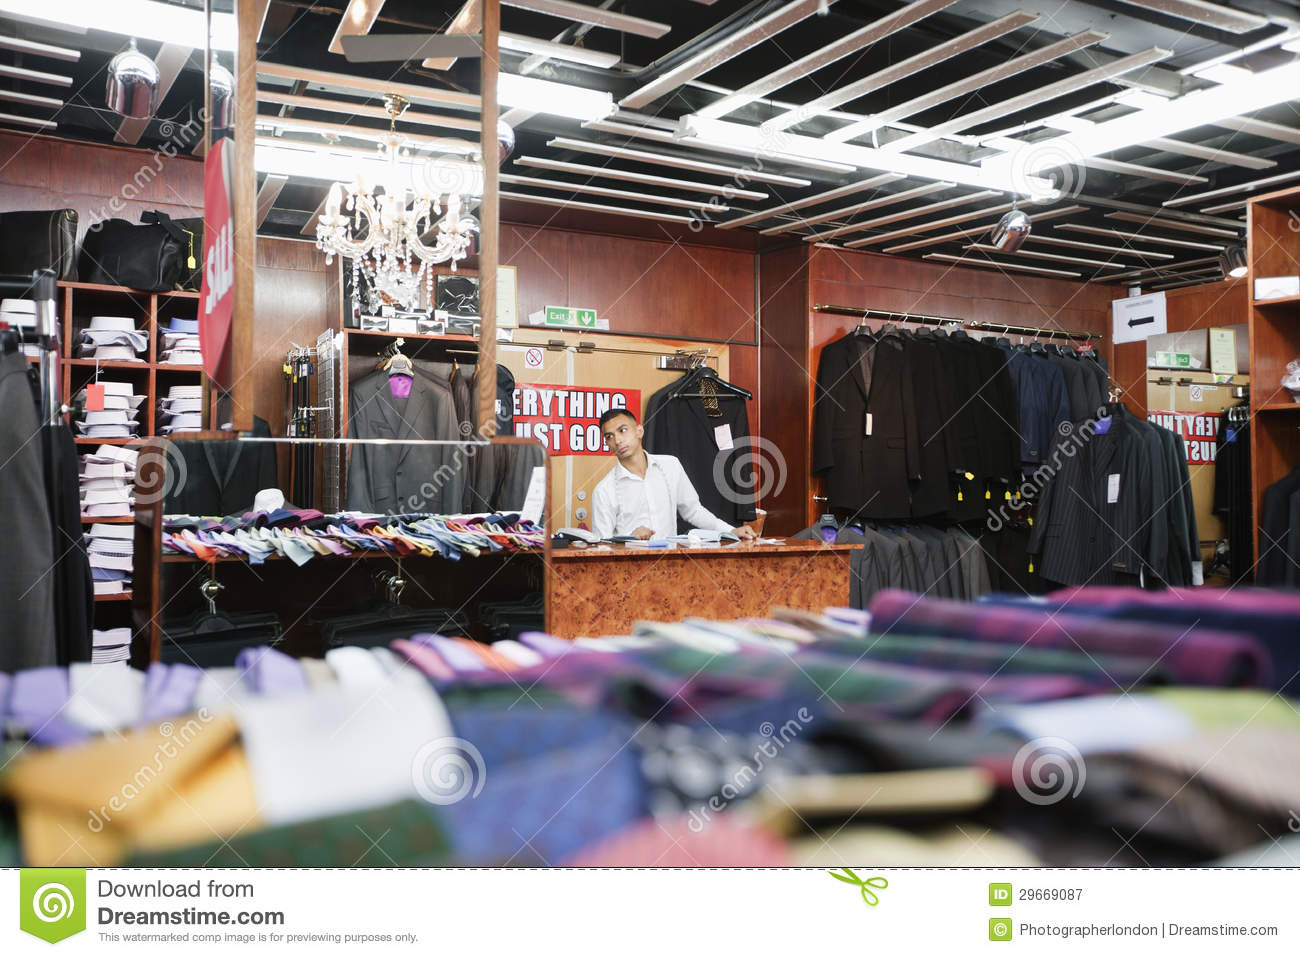 Royalty Free Stock Photography: Man working in a clothing store